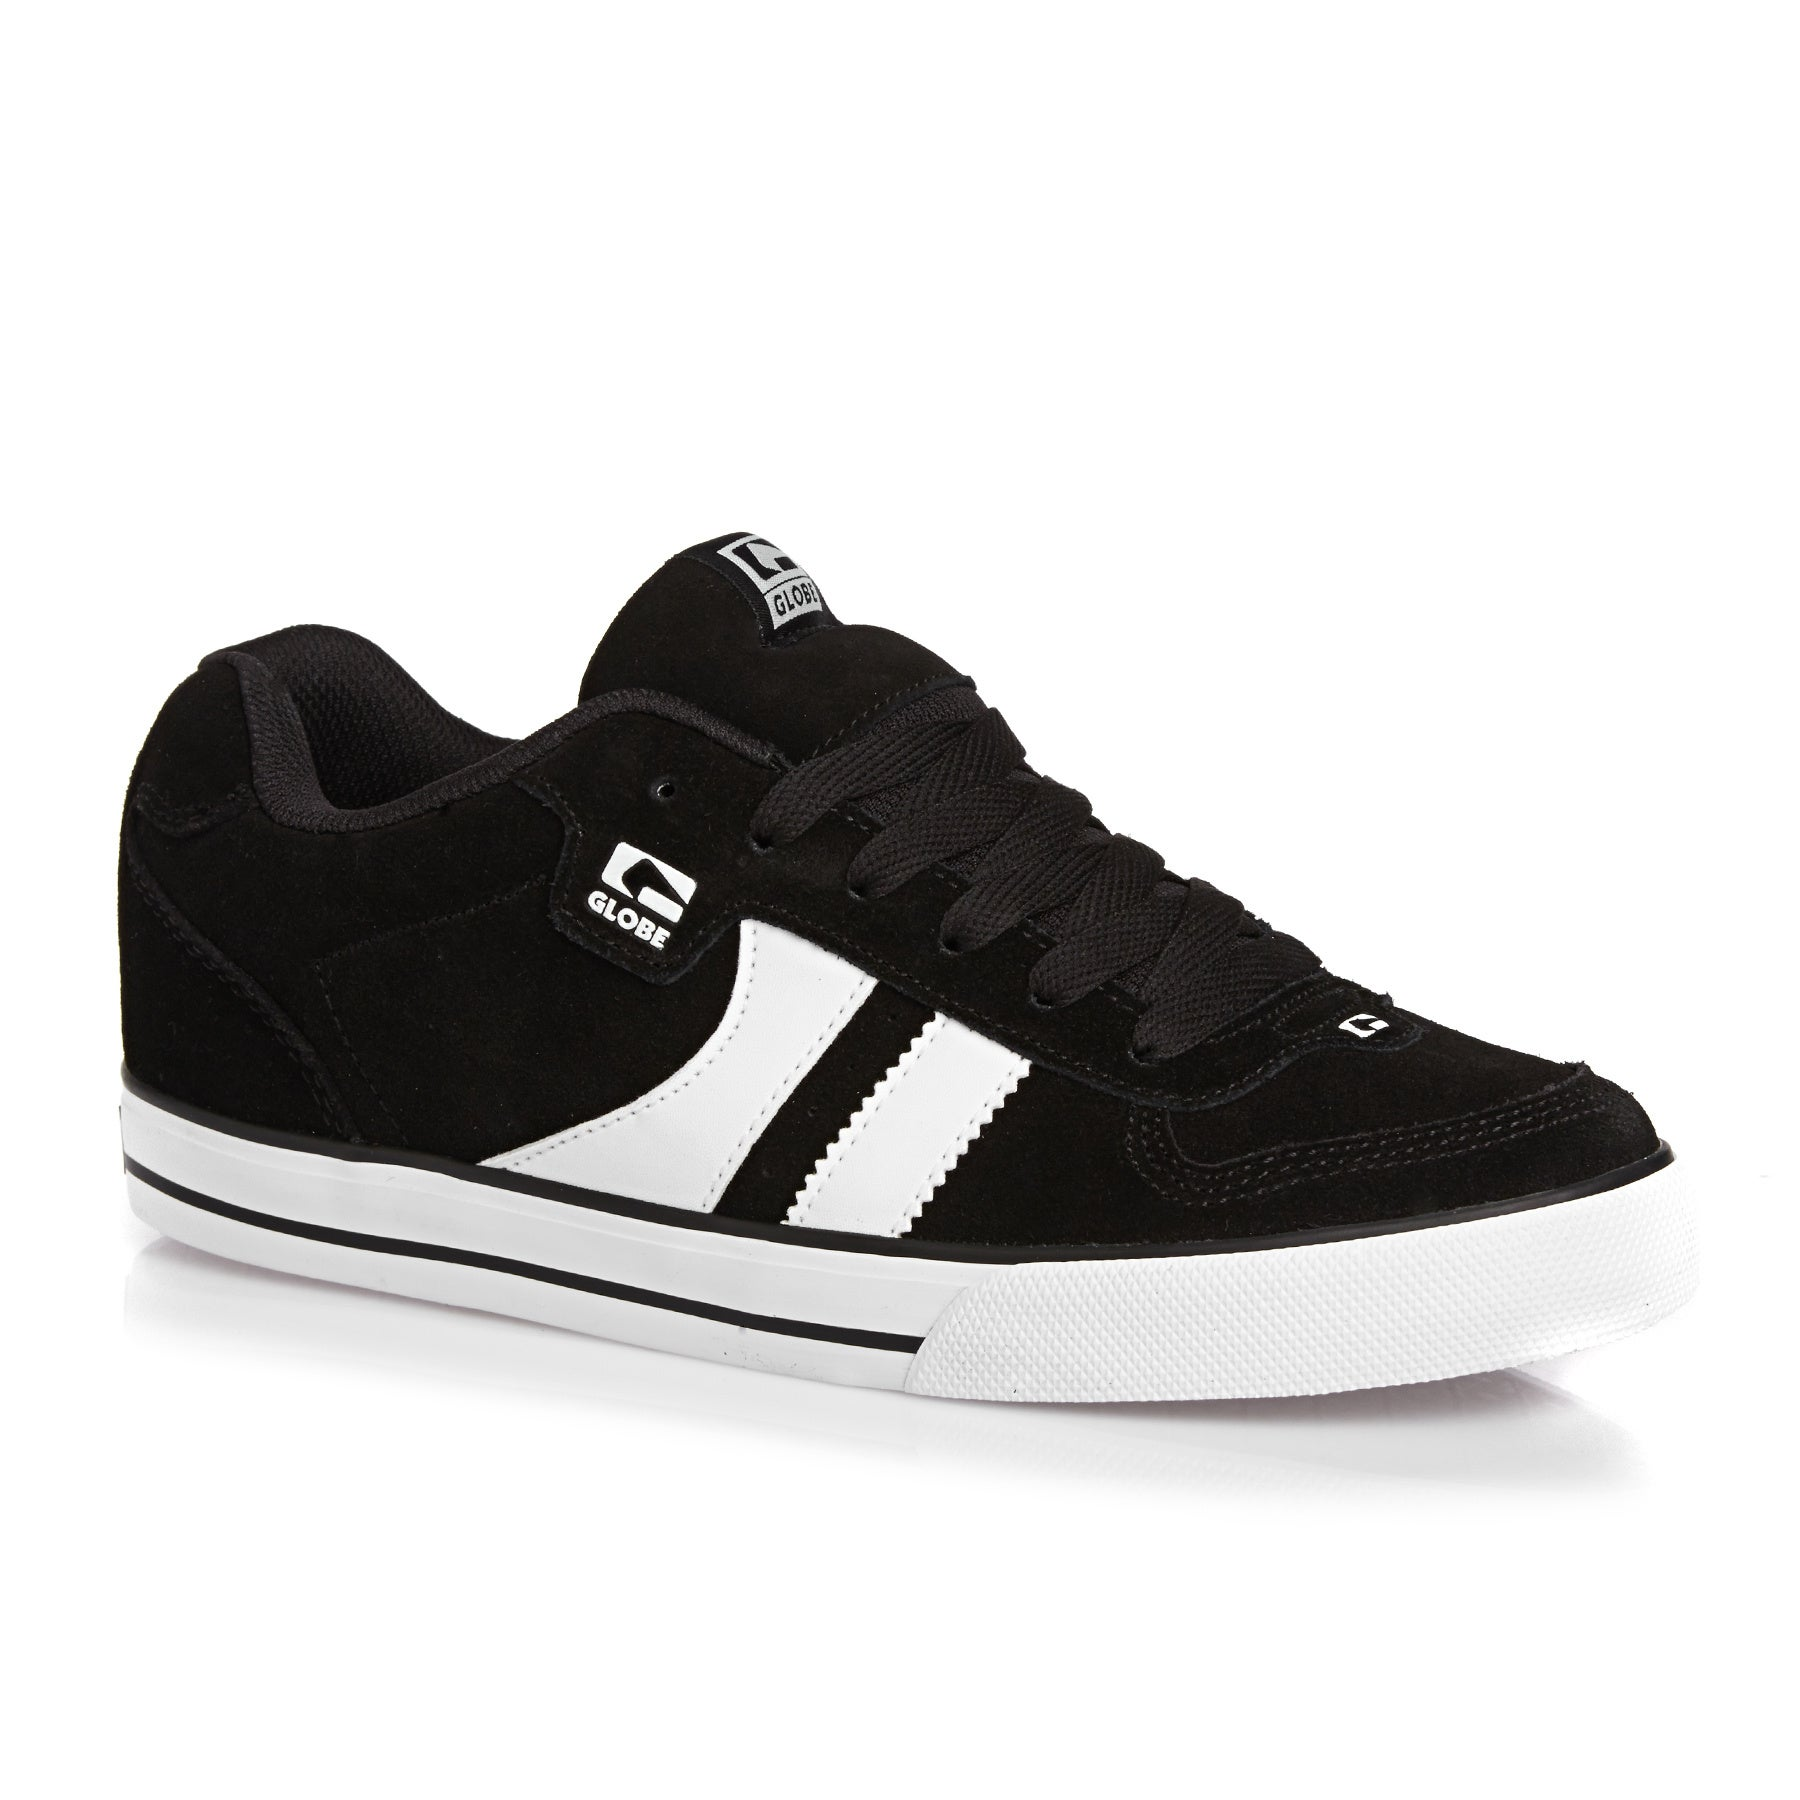 31508838f Globe Encore 2 Shoes - Free Delivery options on All Orders from Surfdome